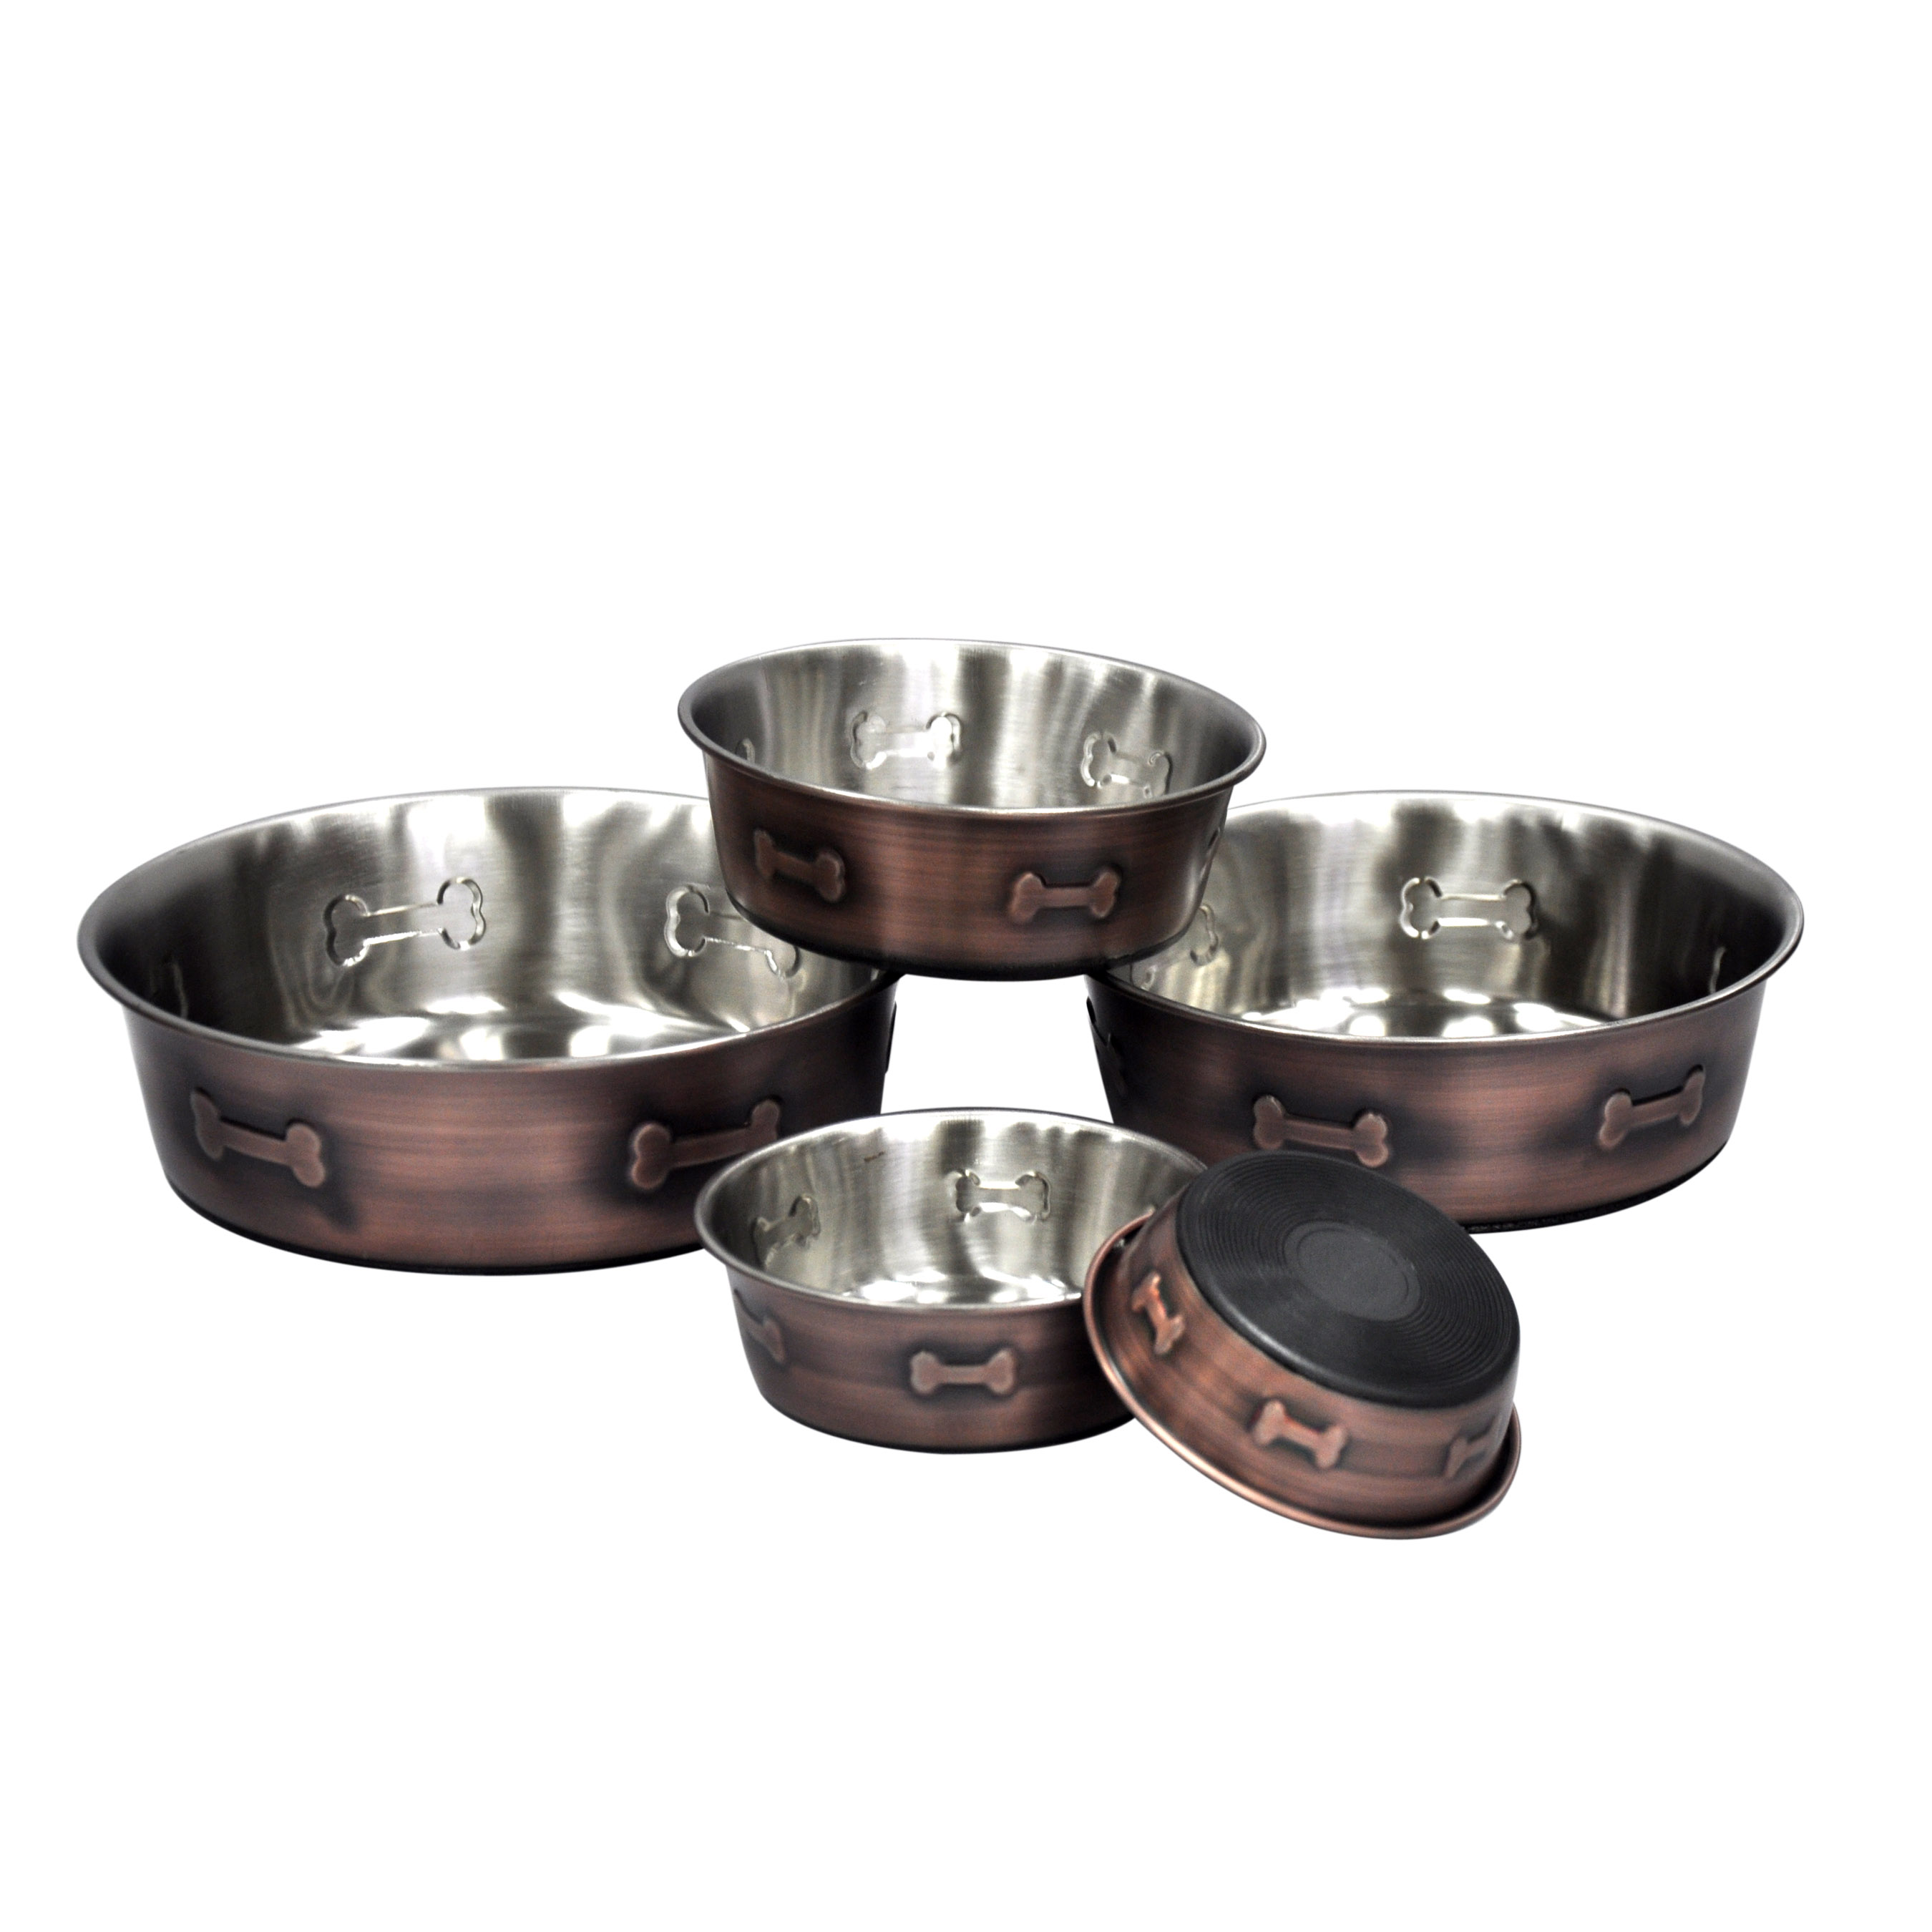 Stainless Steel Copper Bone Bowl, Large